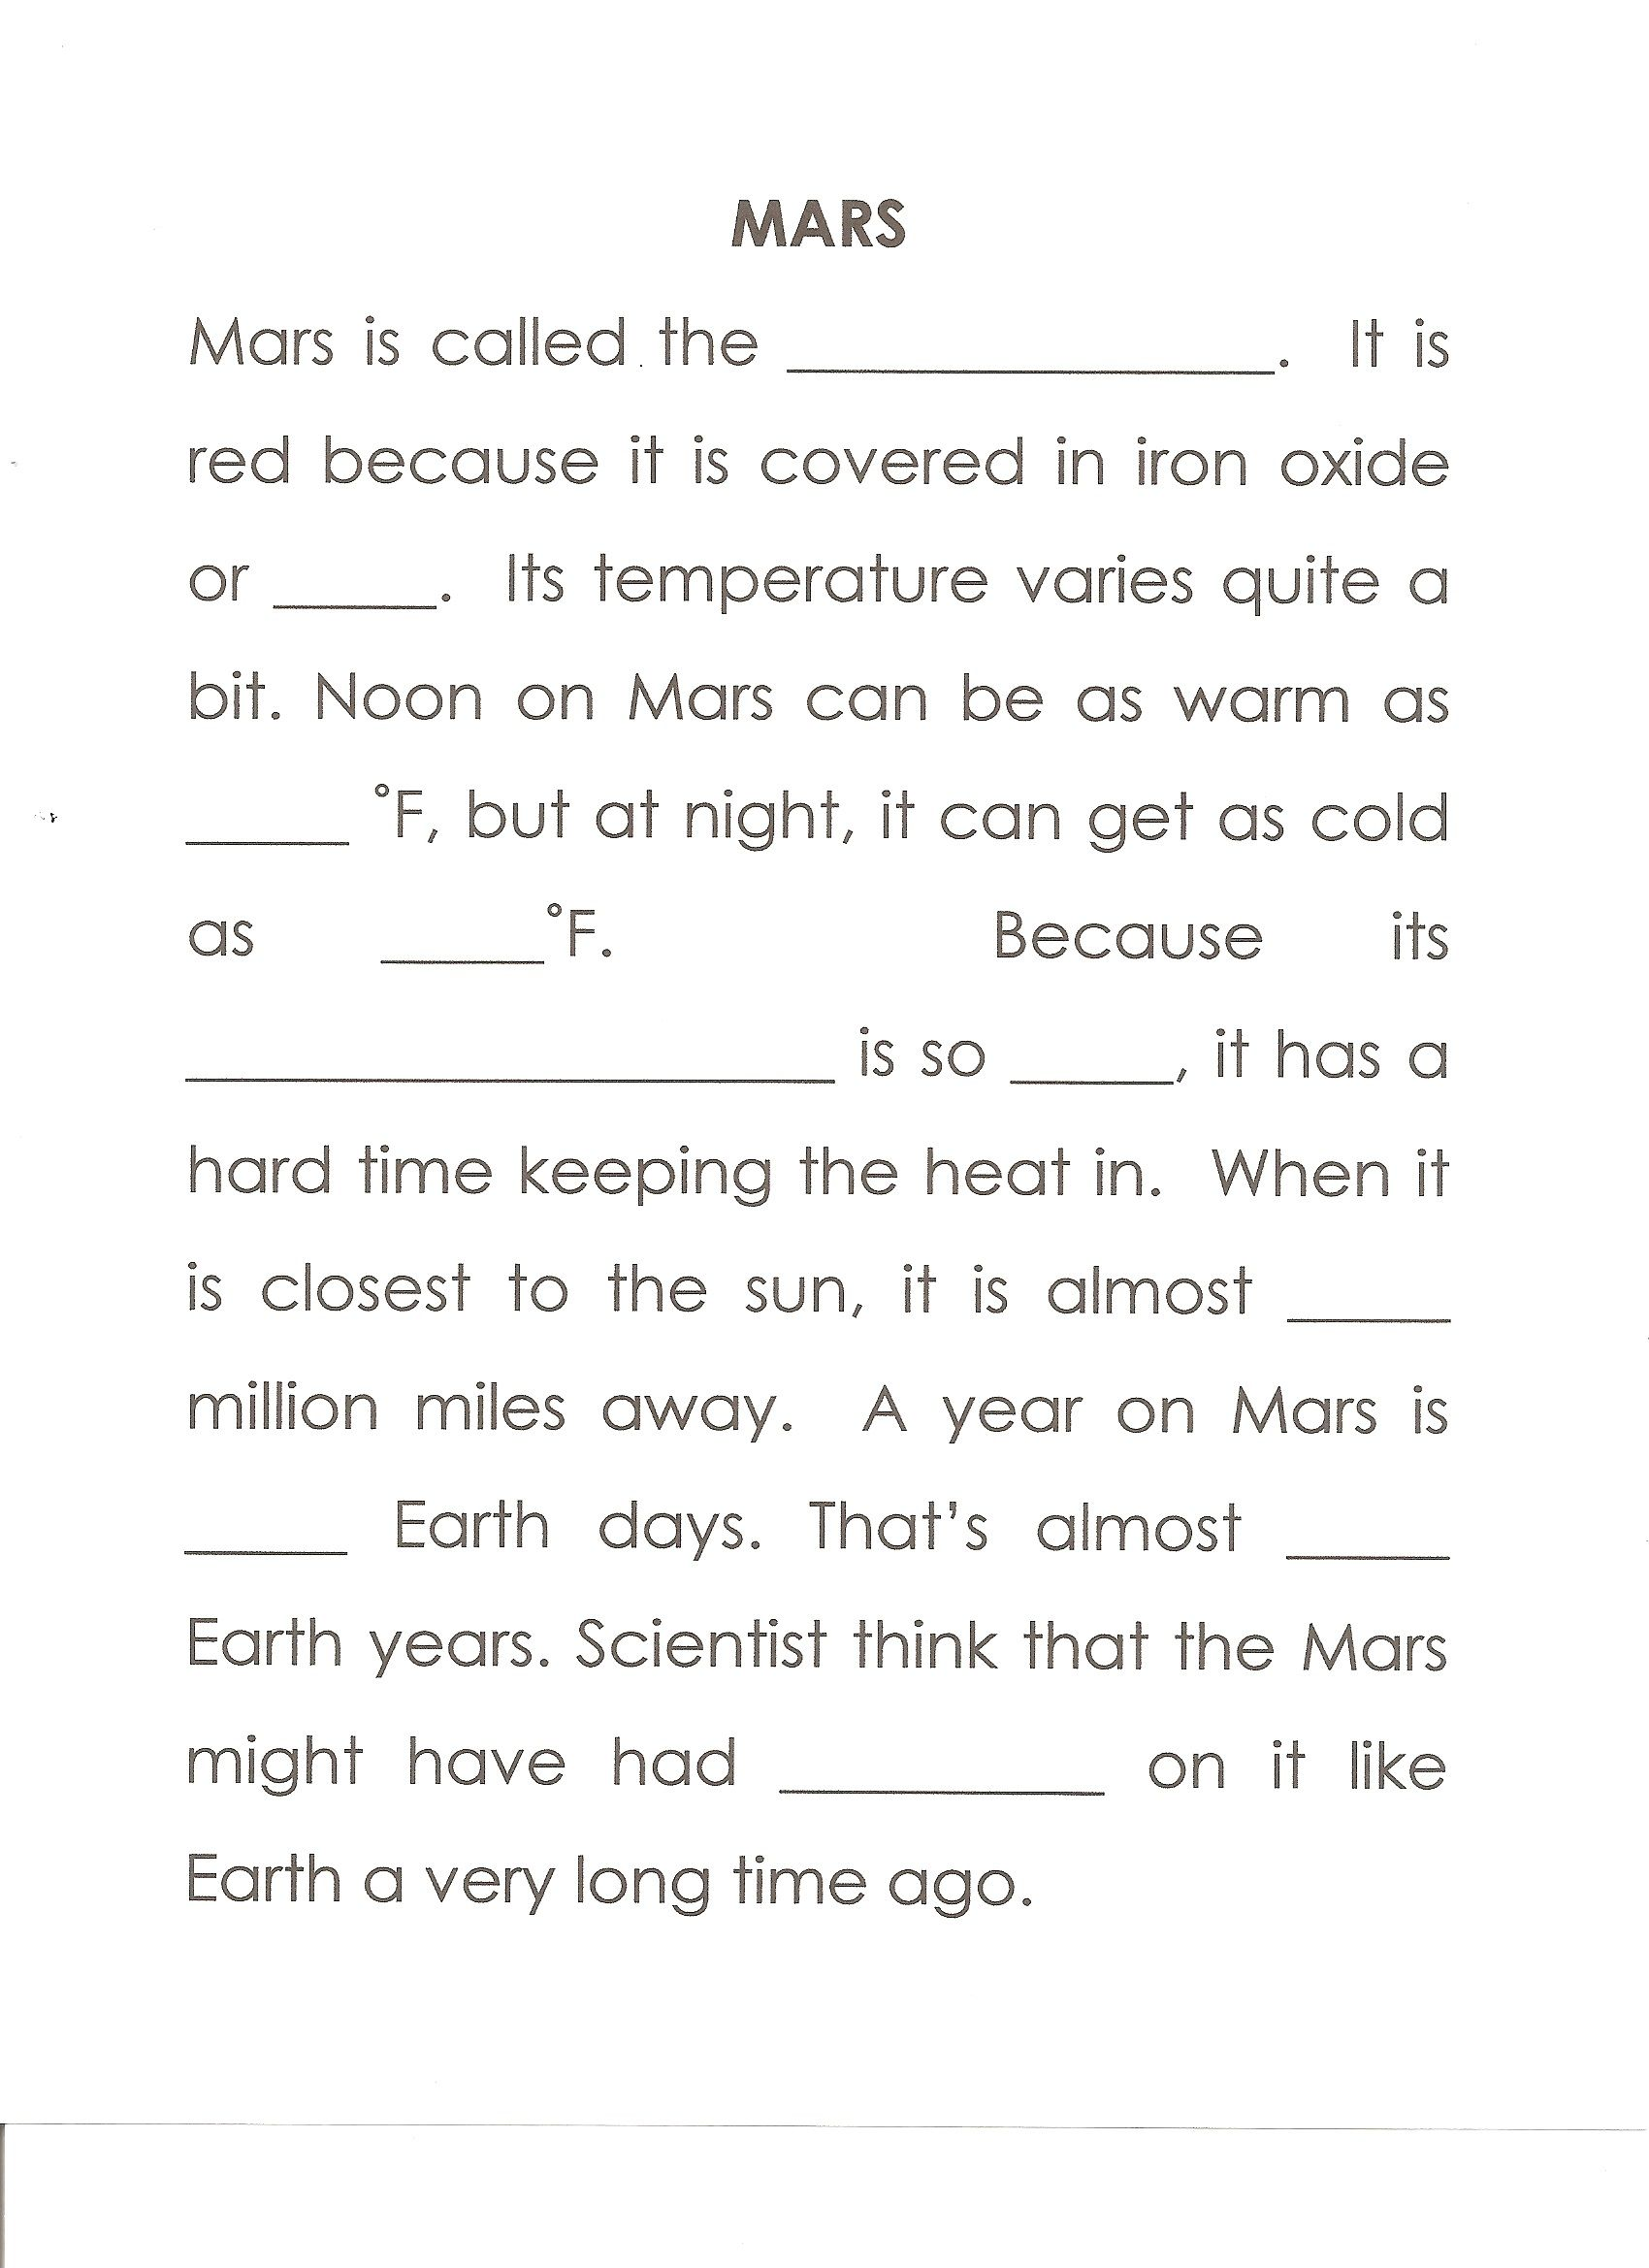 medium resolution of Mars Worksheet Answers: red planet